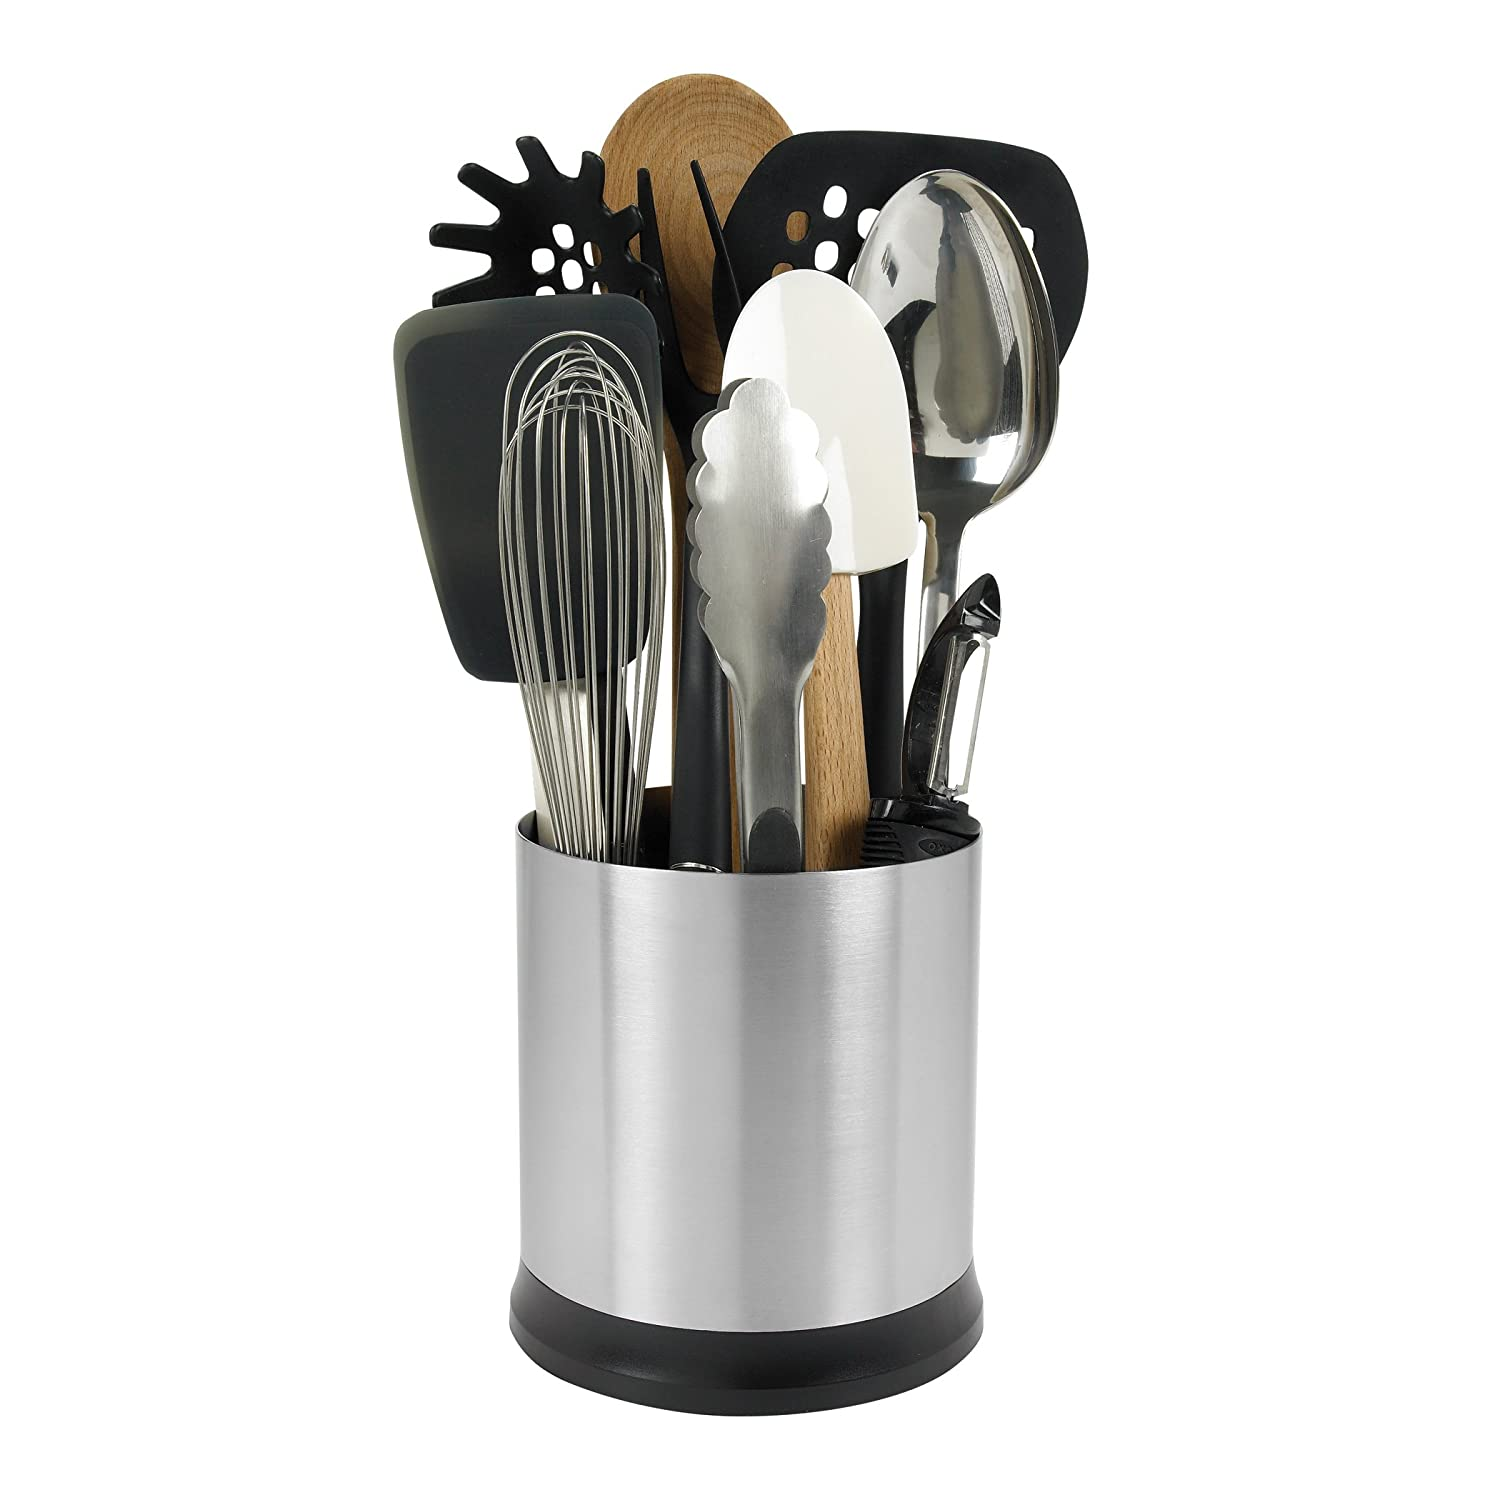 Kitchen Utensil Storage Amazoncom Oxo Good Grips Stainless Steel Rotating Utensil Holder